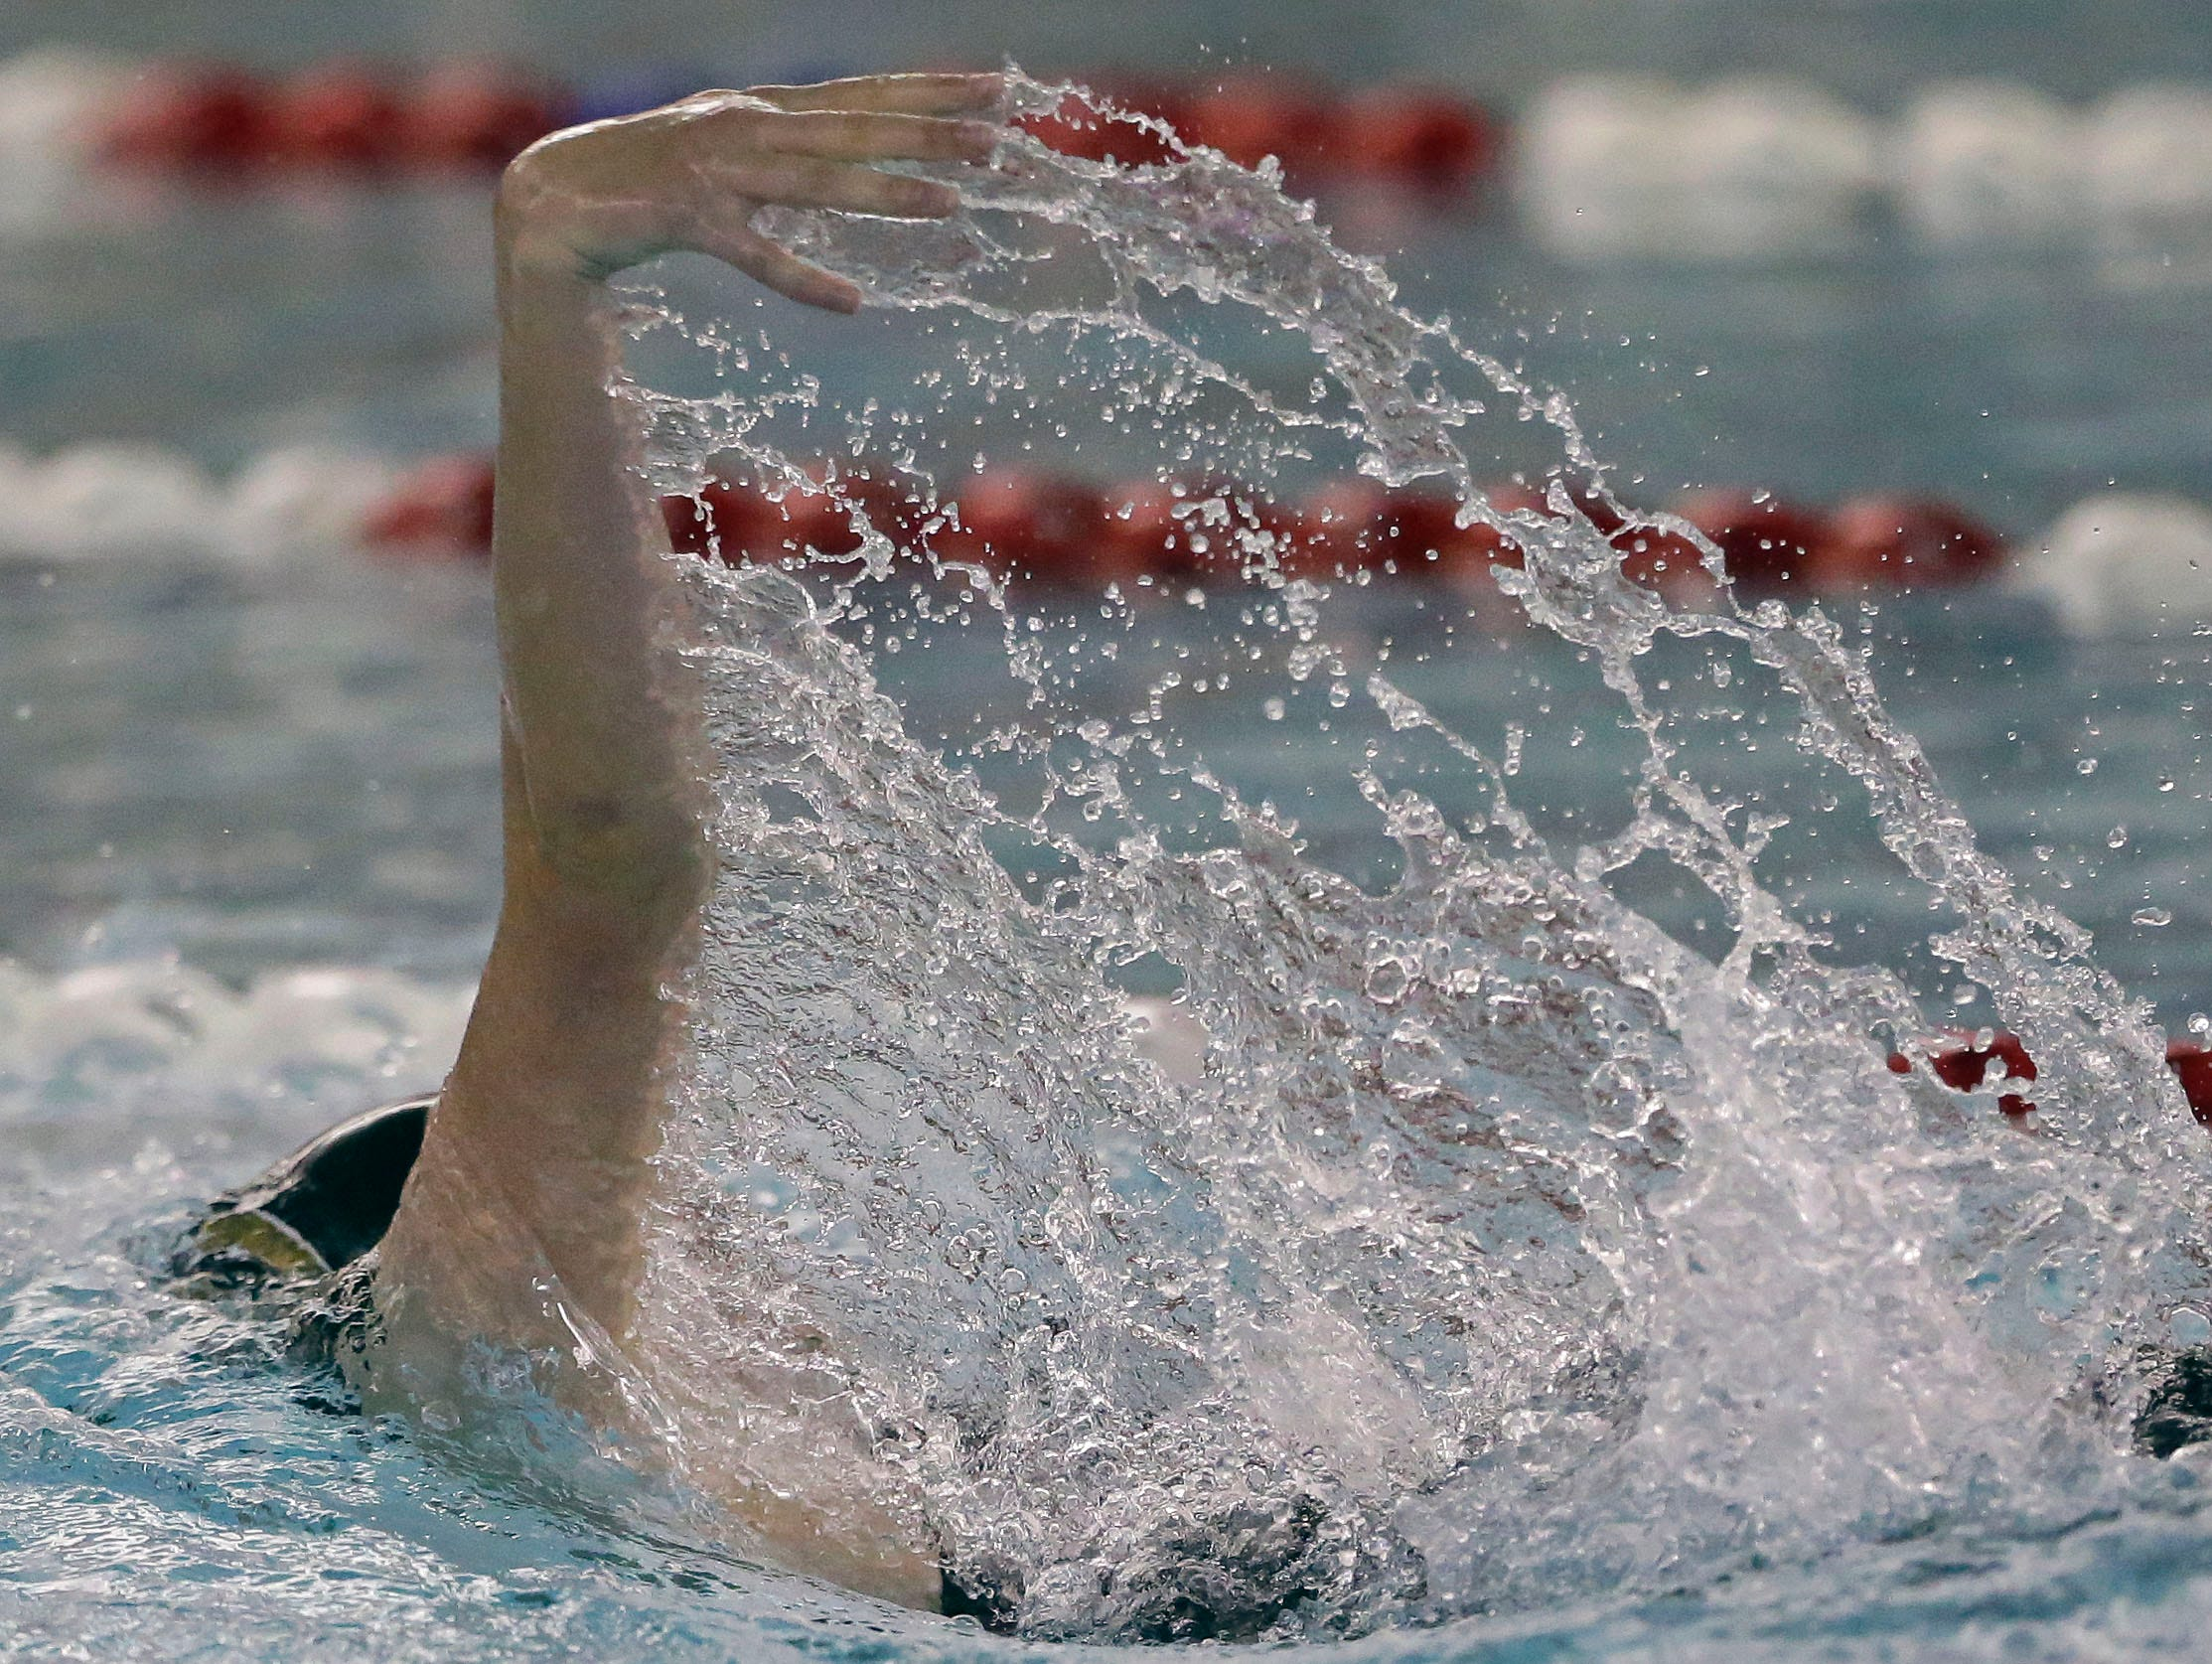 Water is frozen as Brigitta Neverman of Green Bay SW swims the 100 Yard Backstroke as the WIAA Division 1 swimming sectional meet takes place Saturday, November 3, 2018, at Neenah High School in Neenah, Wis. Winners advanced to state.Ron Page/USA TODAY NETWORK-Wisconsin